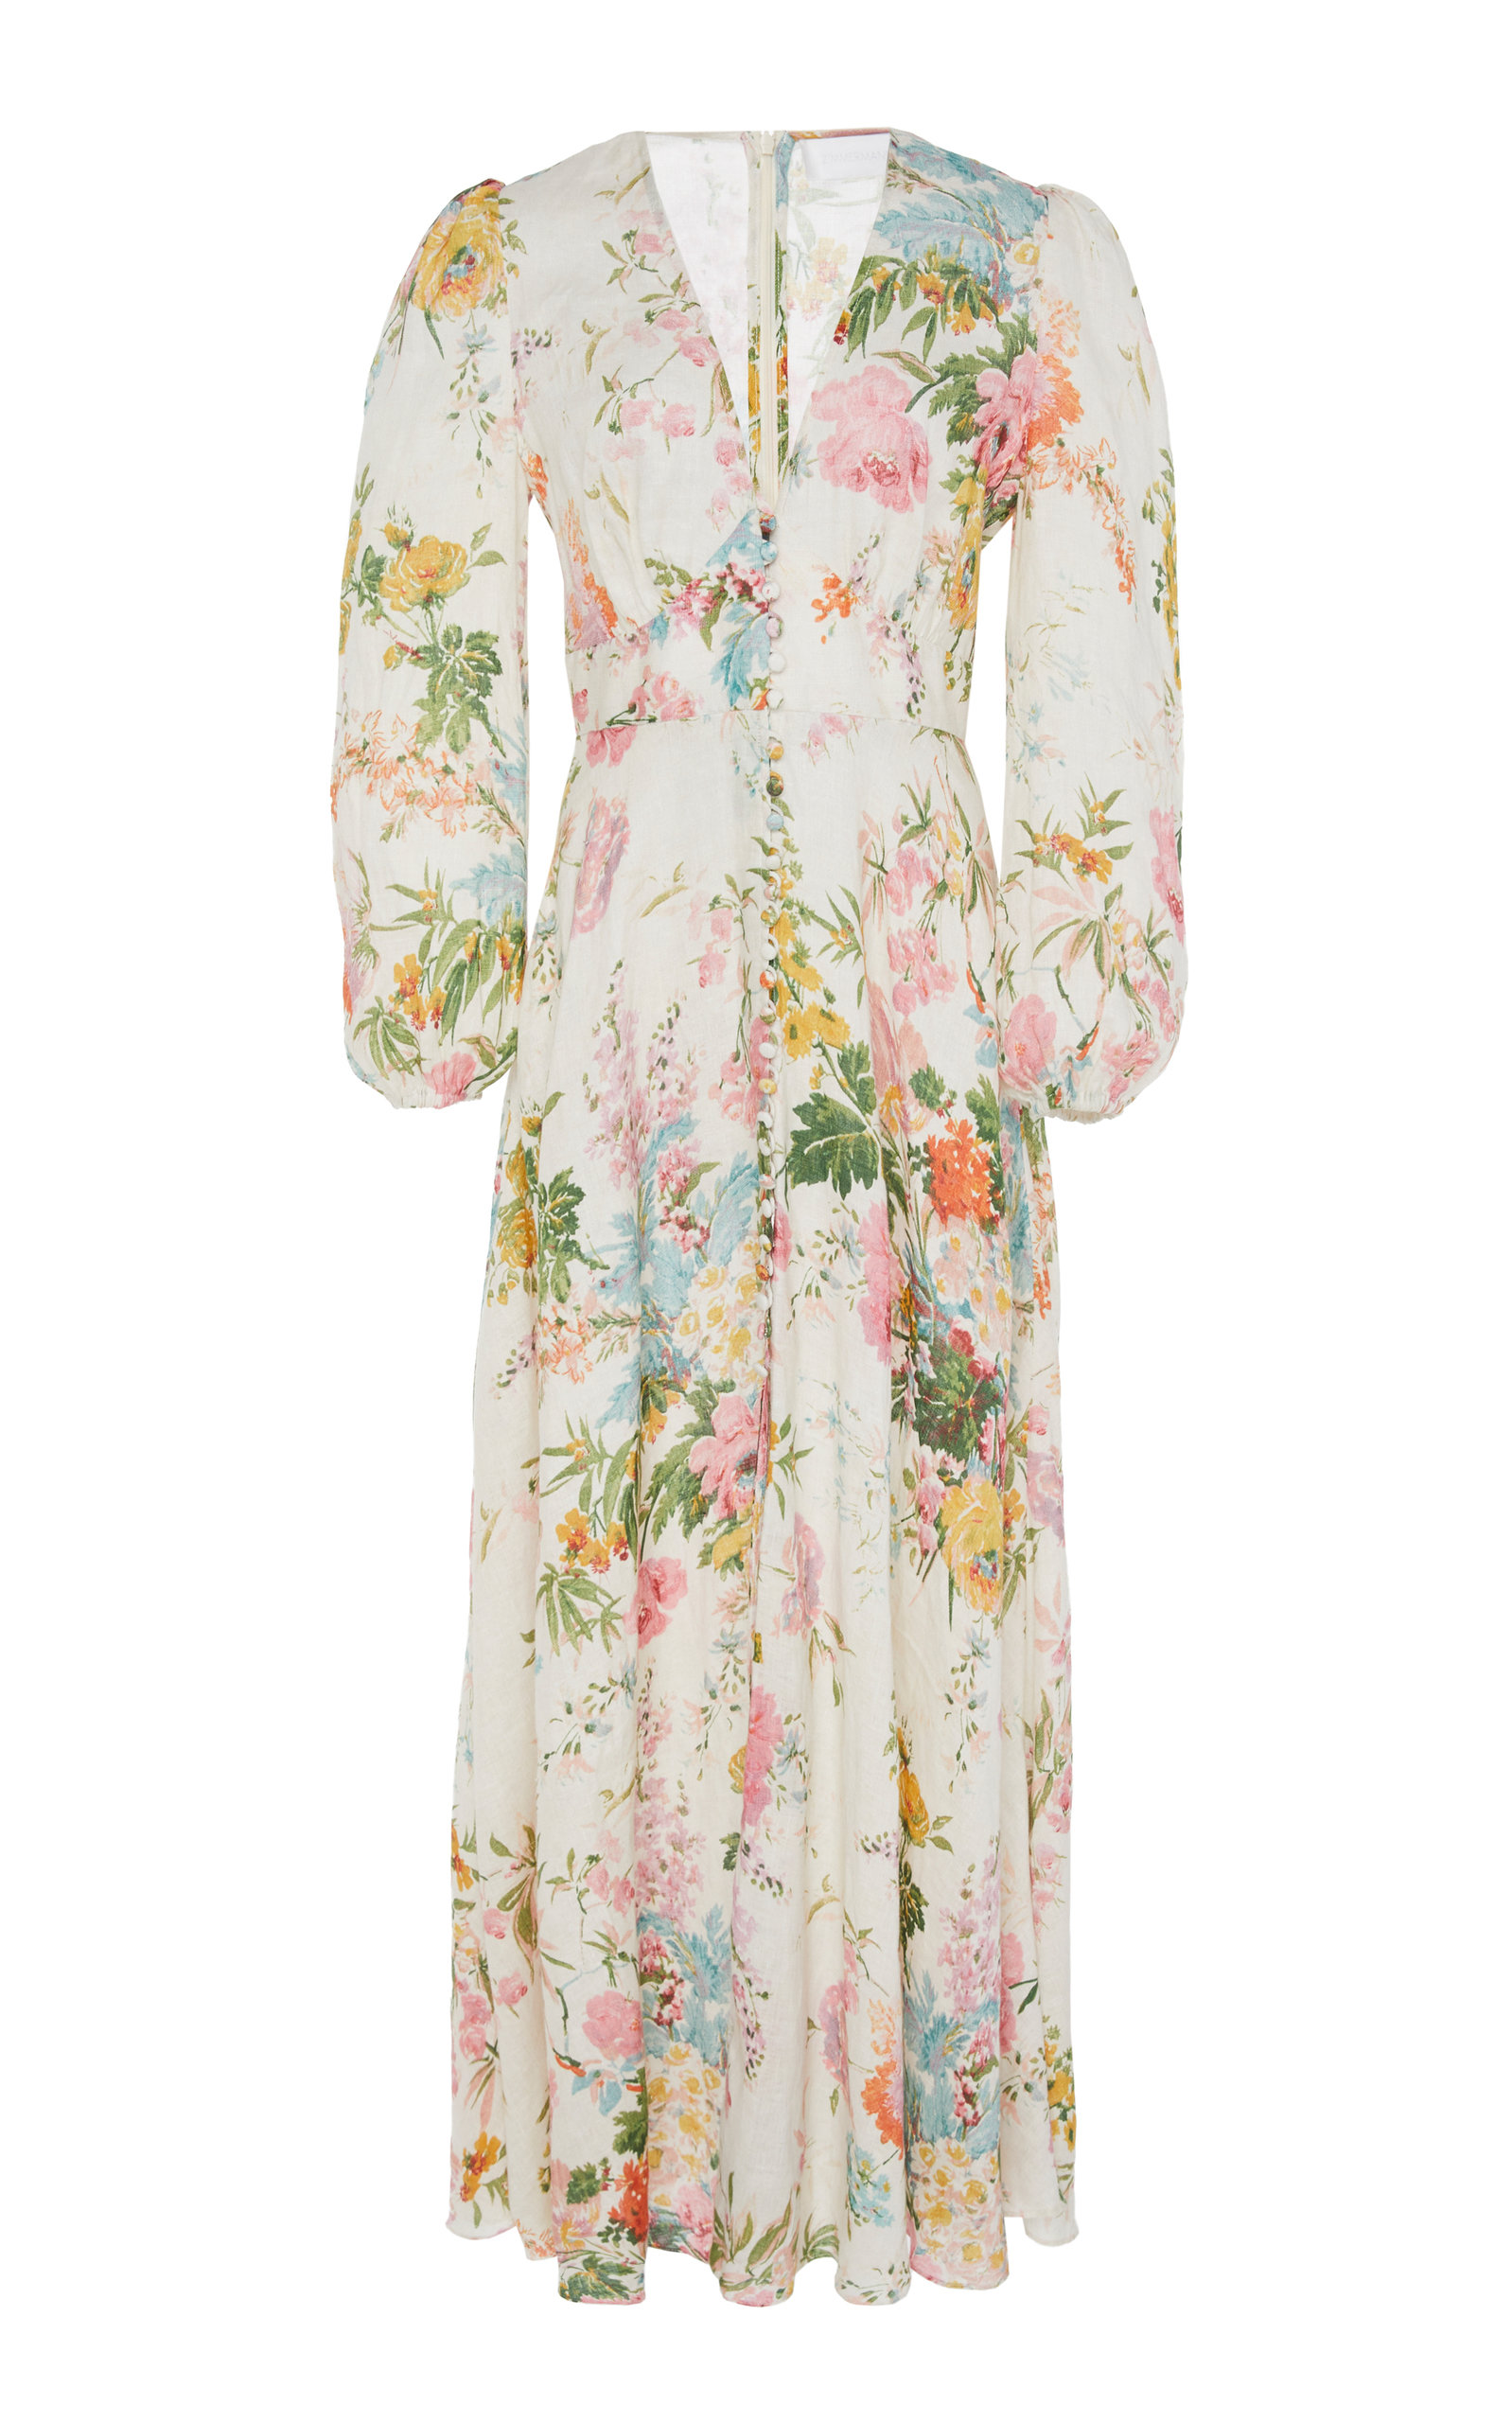 b827ac9c915 ZimmermannHeathers Floral Linen Maxi Dress. CLOSE. Loading